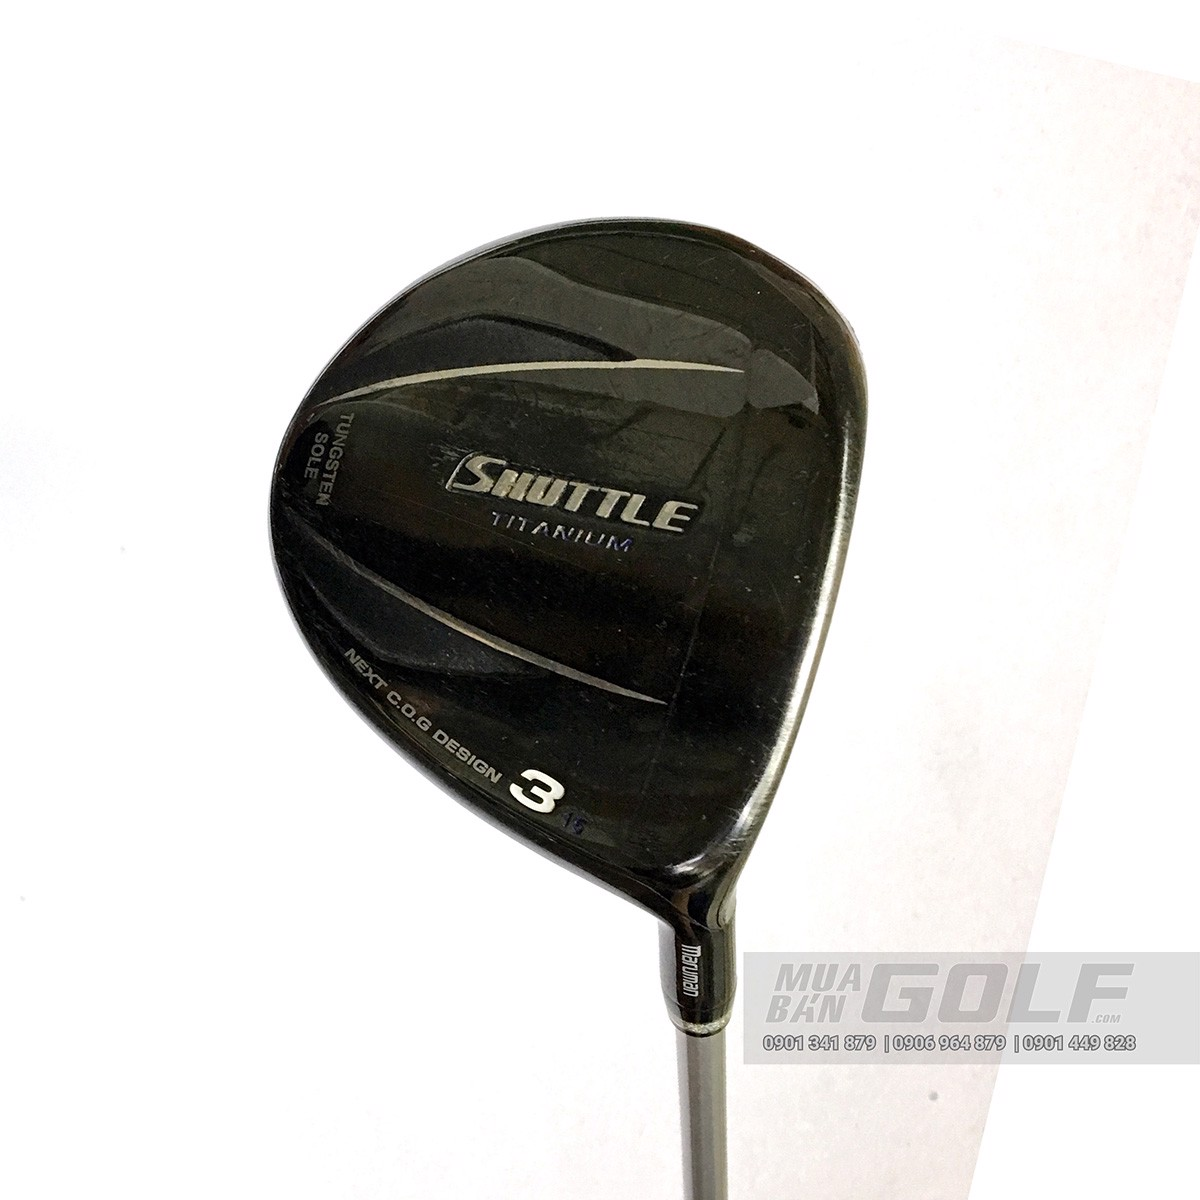 GẬY GOLF GỖ FW3 Regular SCF SHU1